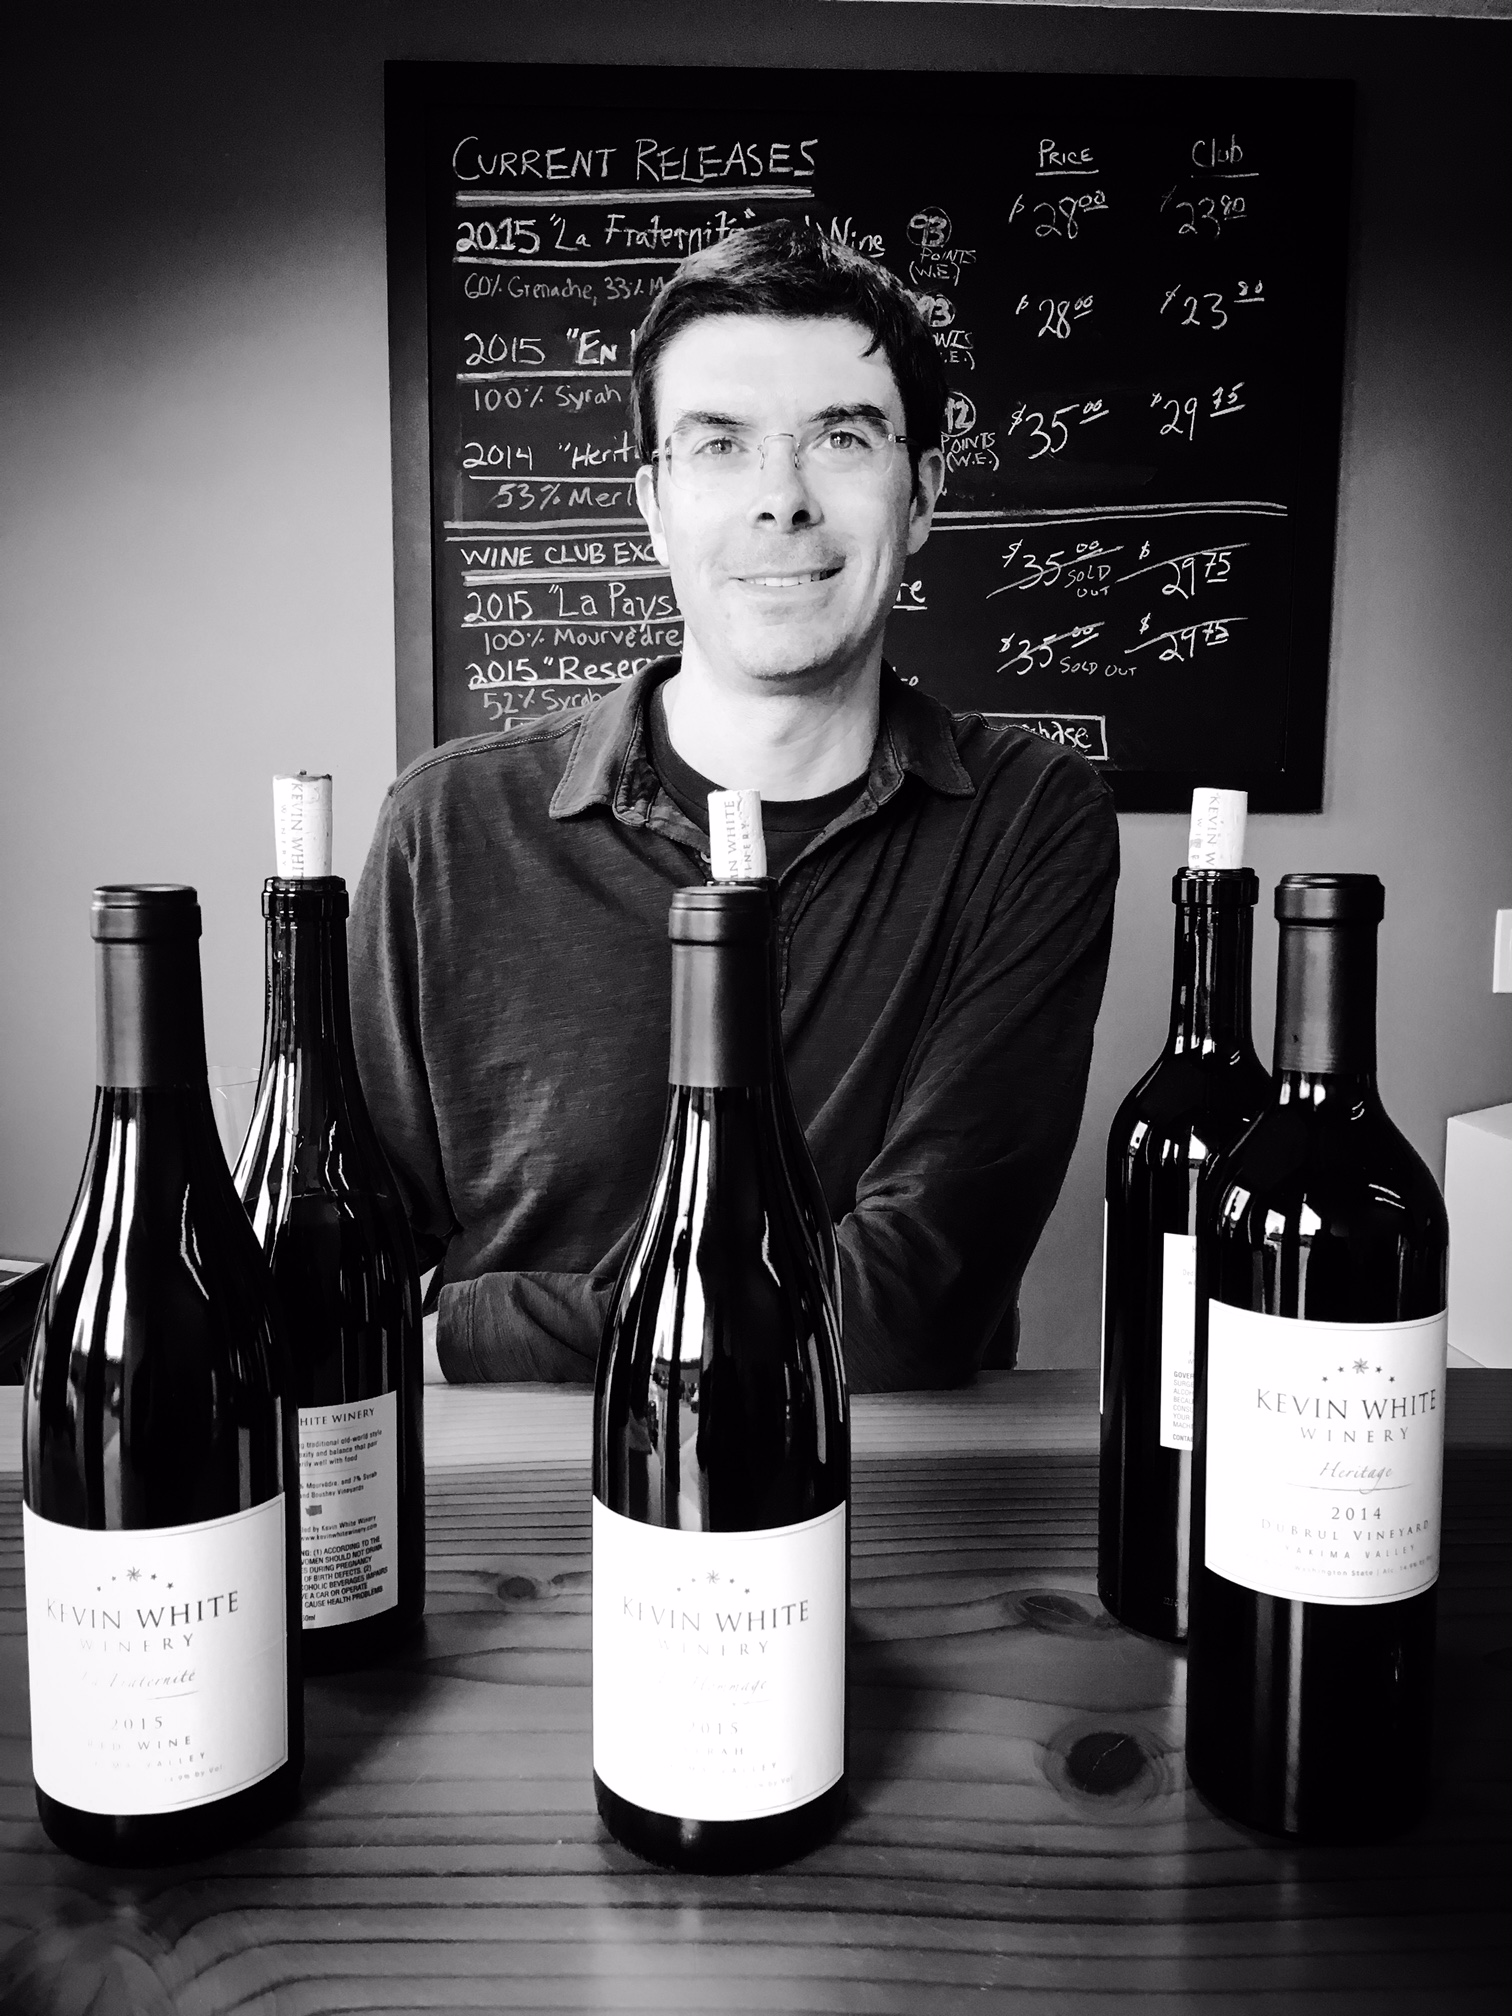 Great photo here of Kevin White at his winery in Woodinville.